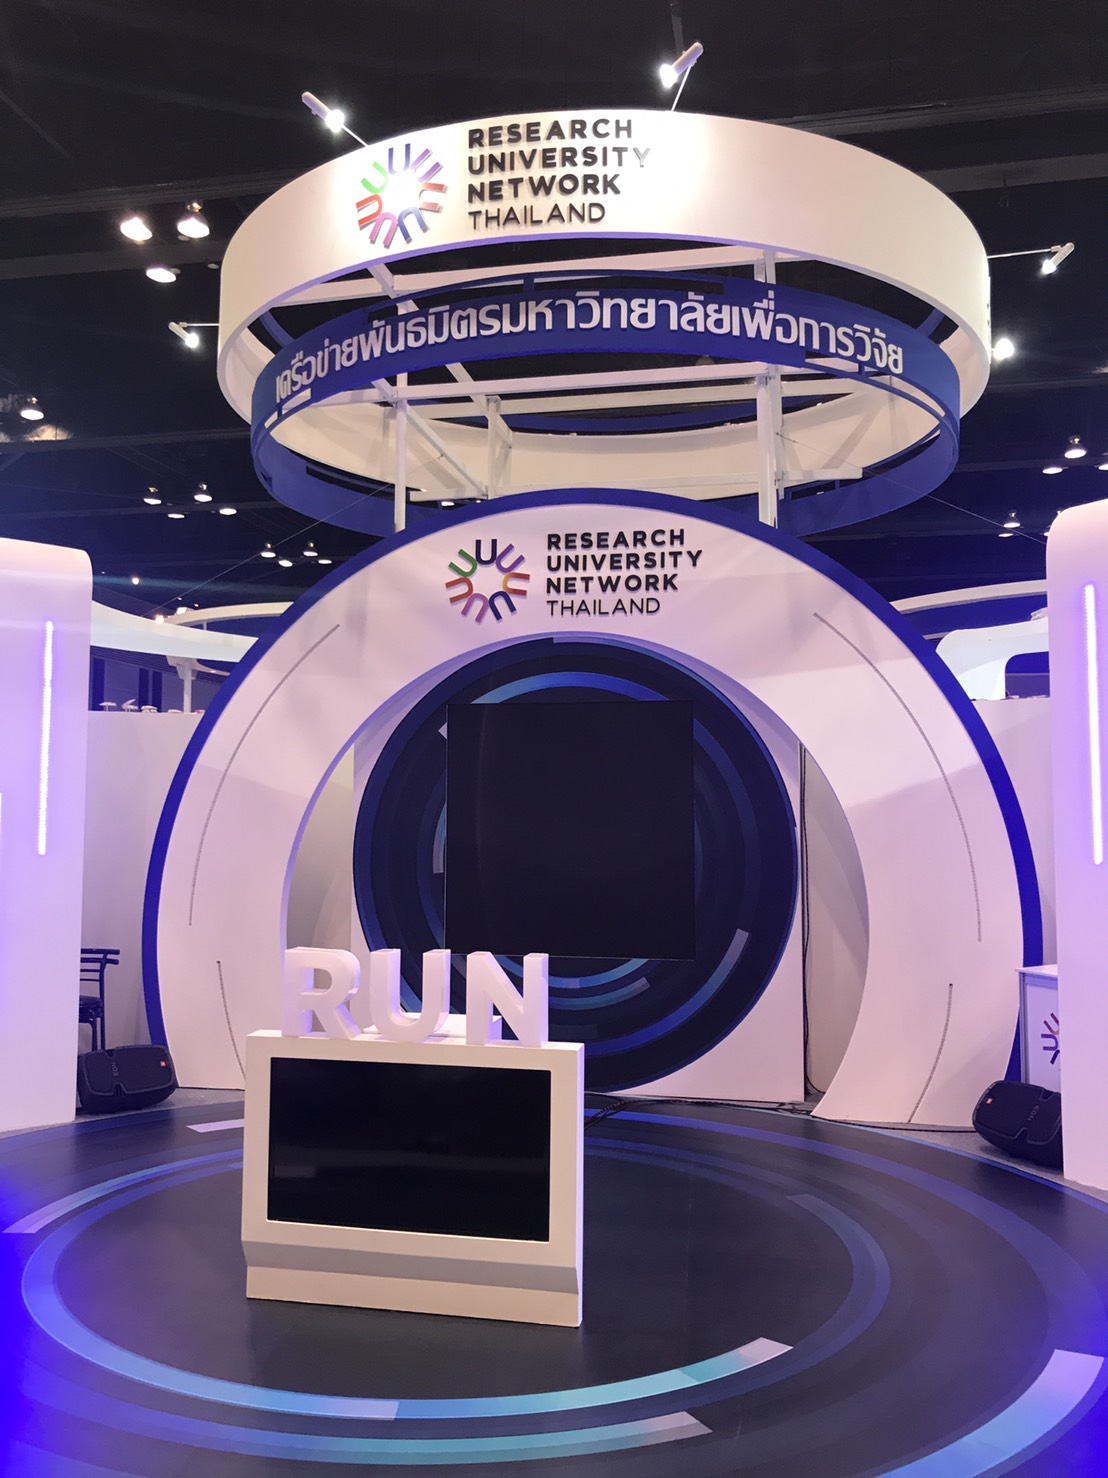 Research University Network Booth